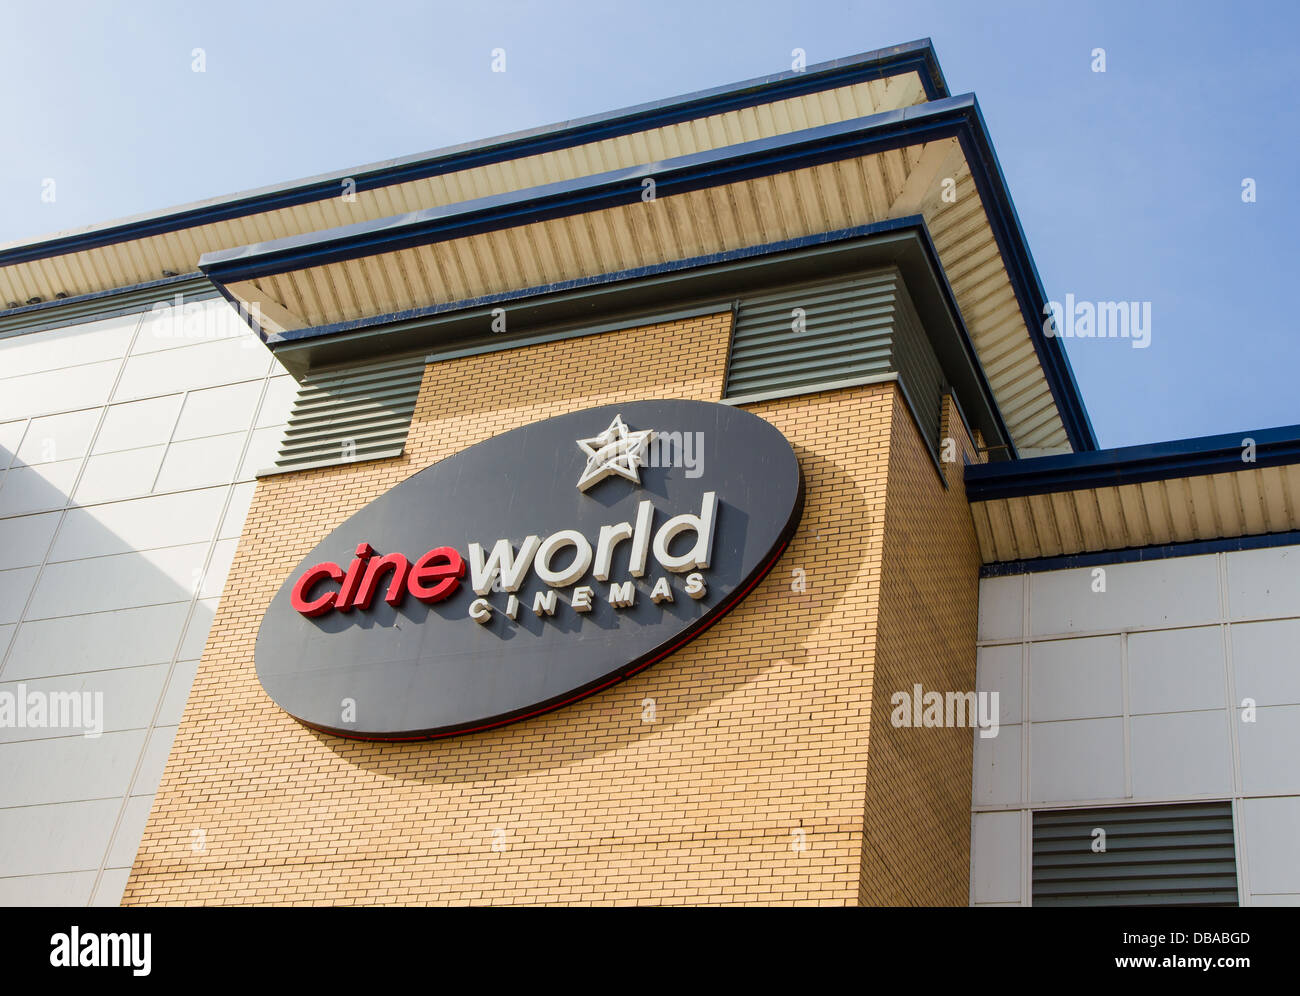 Exterior sign on Cineworld Cinema in the Valley, Bolton, Lancashire - Stock Image